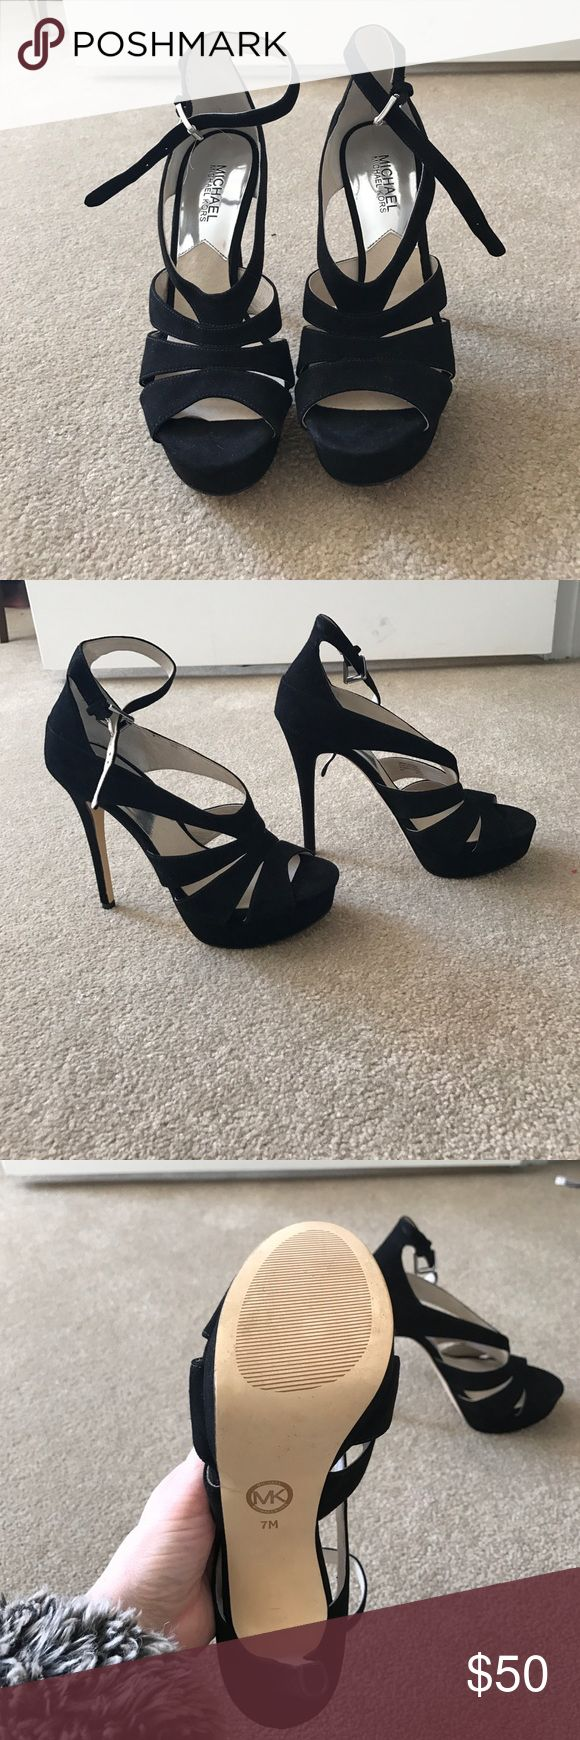 Brand New Michael Kors Heels! Cleaning out my closet! Anything I haven't worn in a year is out! Take advantage! Brand New Michael Kors Heels! MICHAEL Michael Kors Shoes Heels